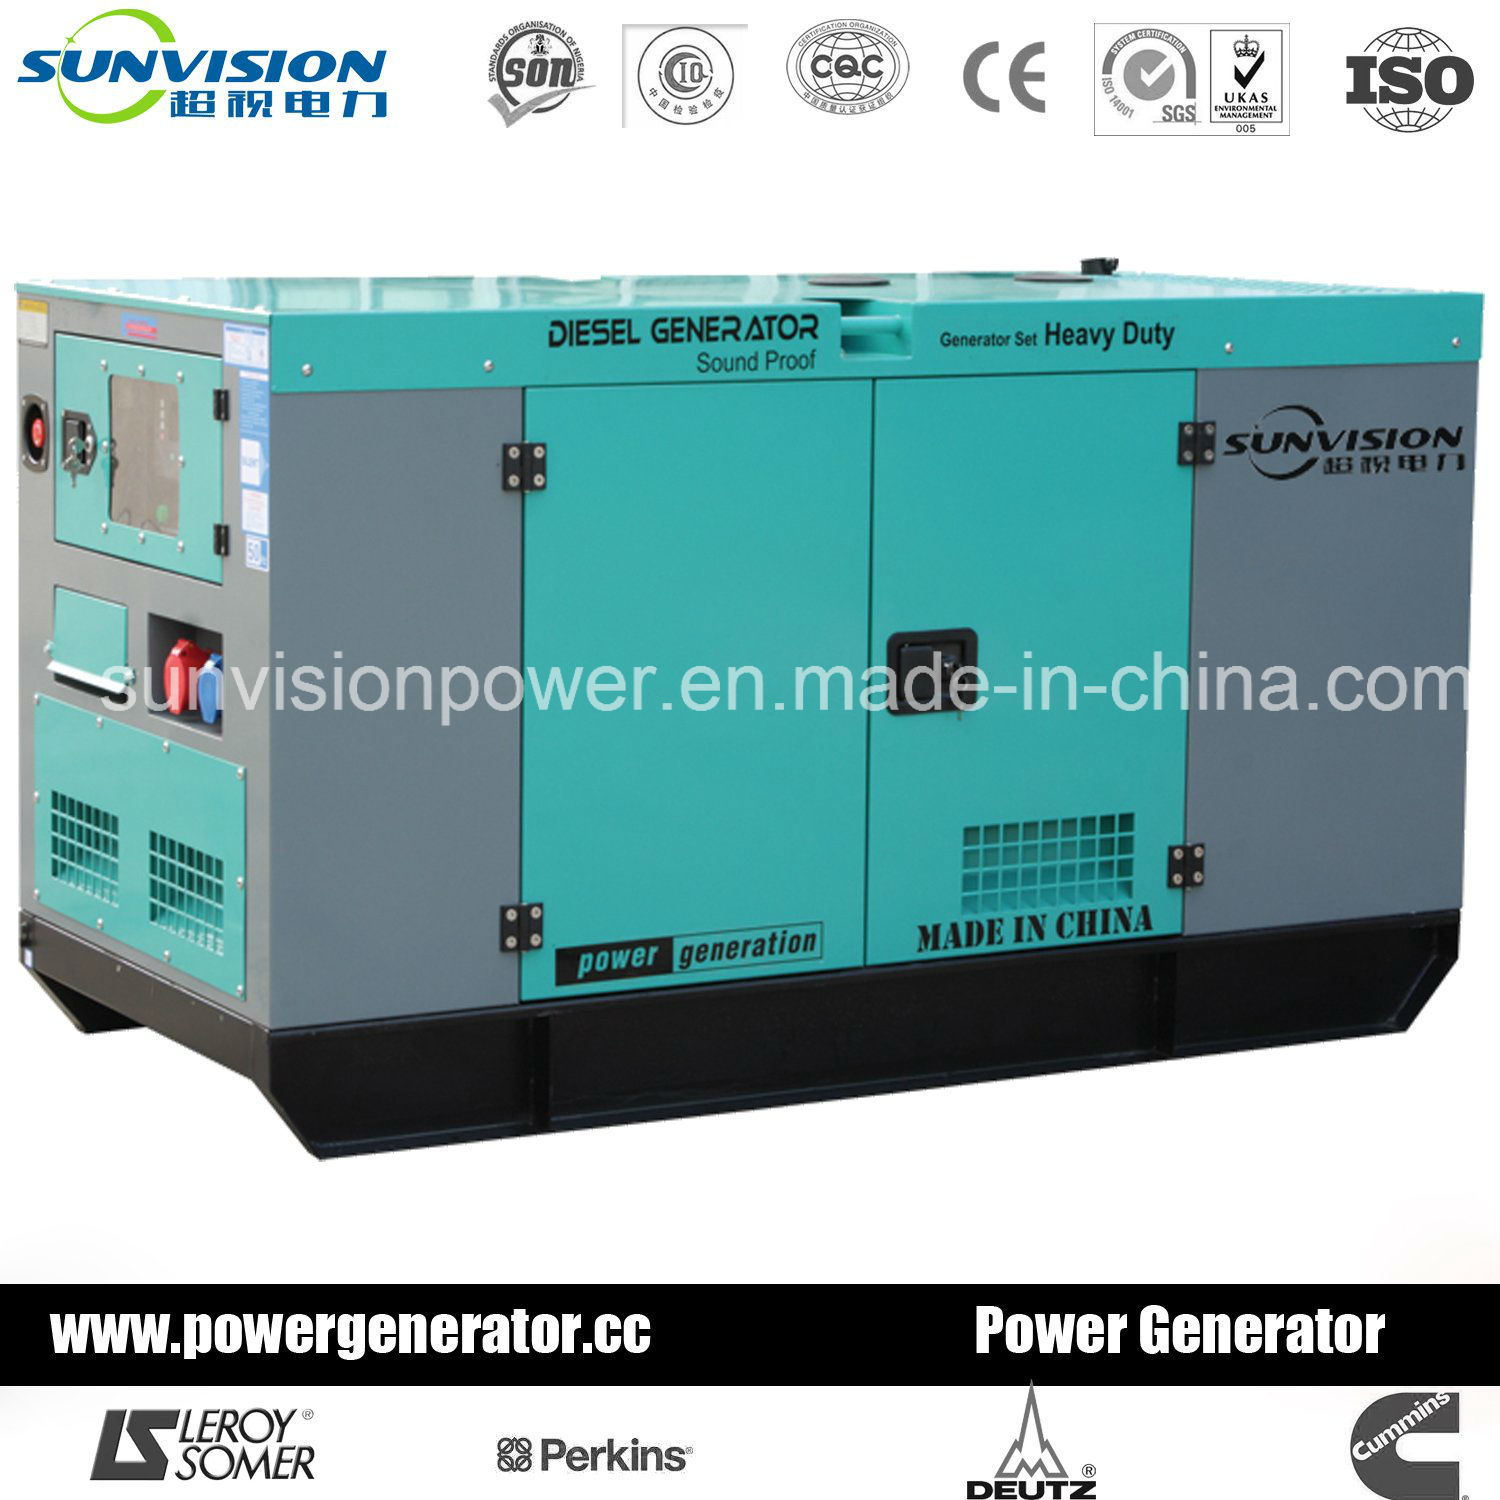 China Made Genset with Perkins Engine 300kVA (60Hz)